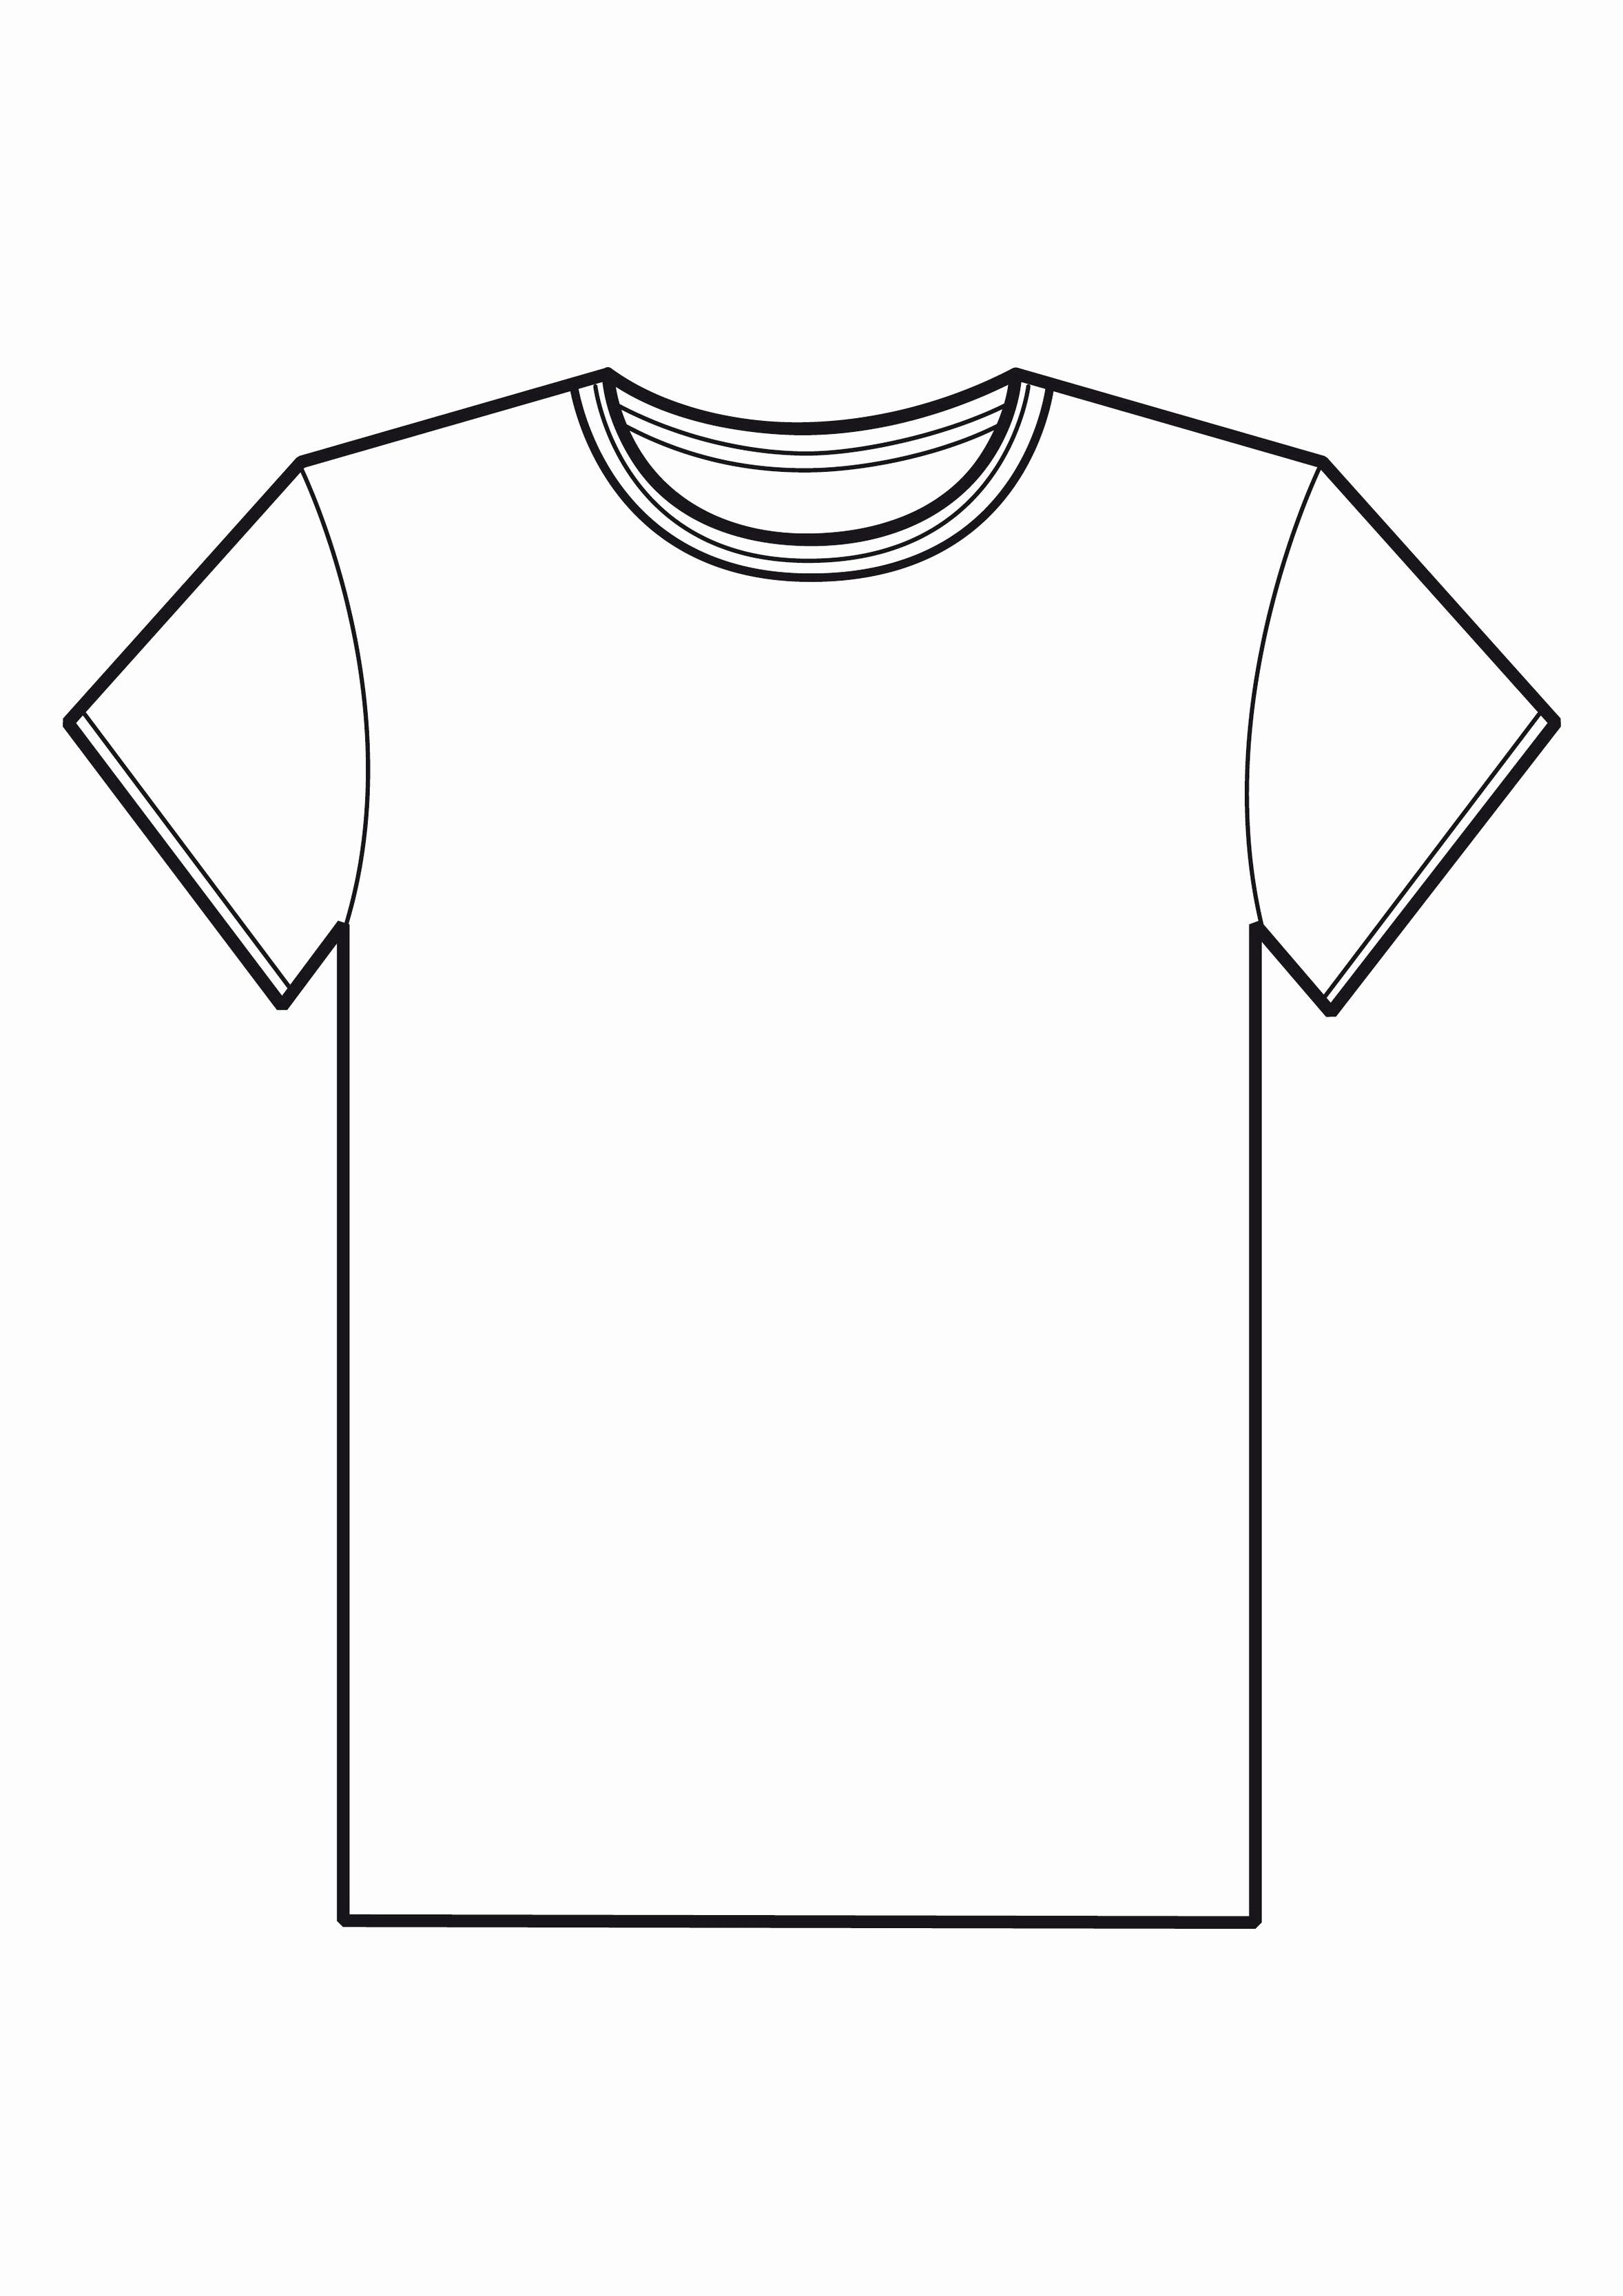 T-shirt Drawing Best Of 71 Free T Shirt Clipart Cliparting